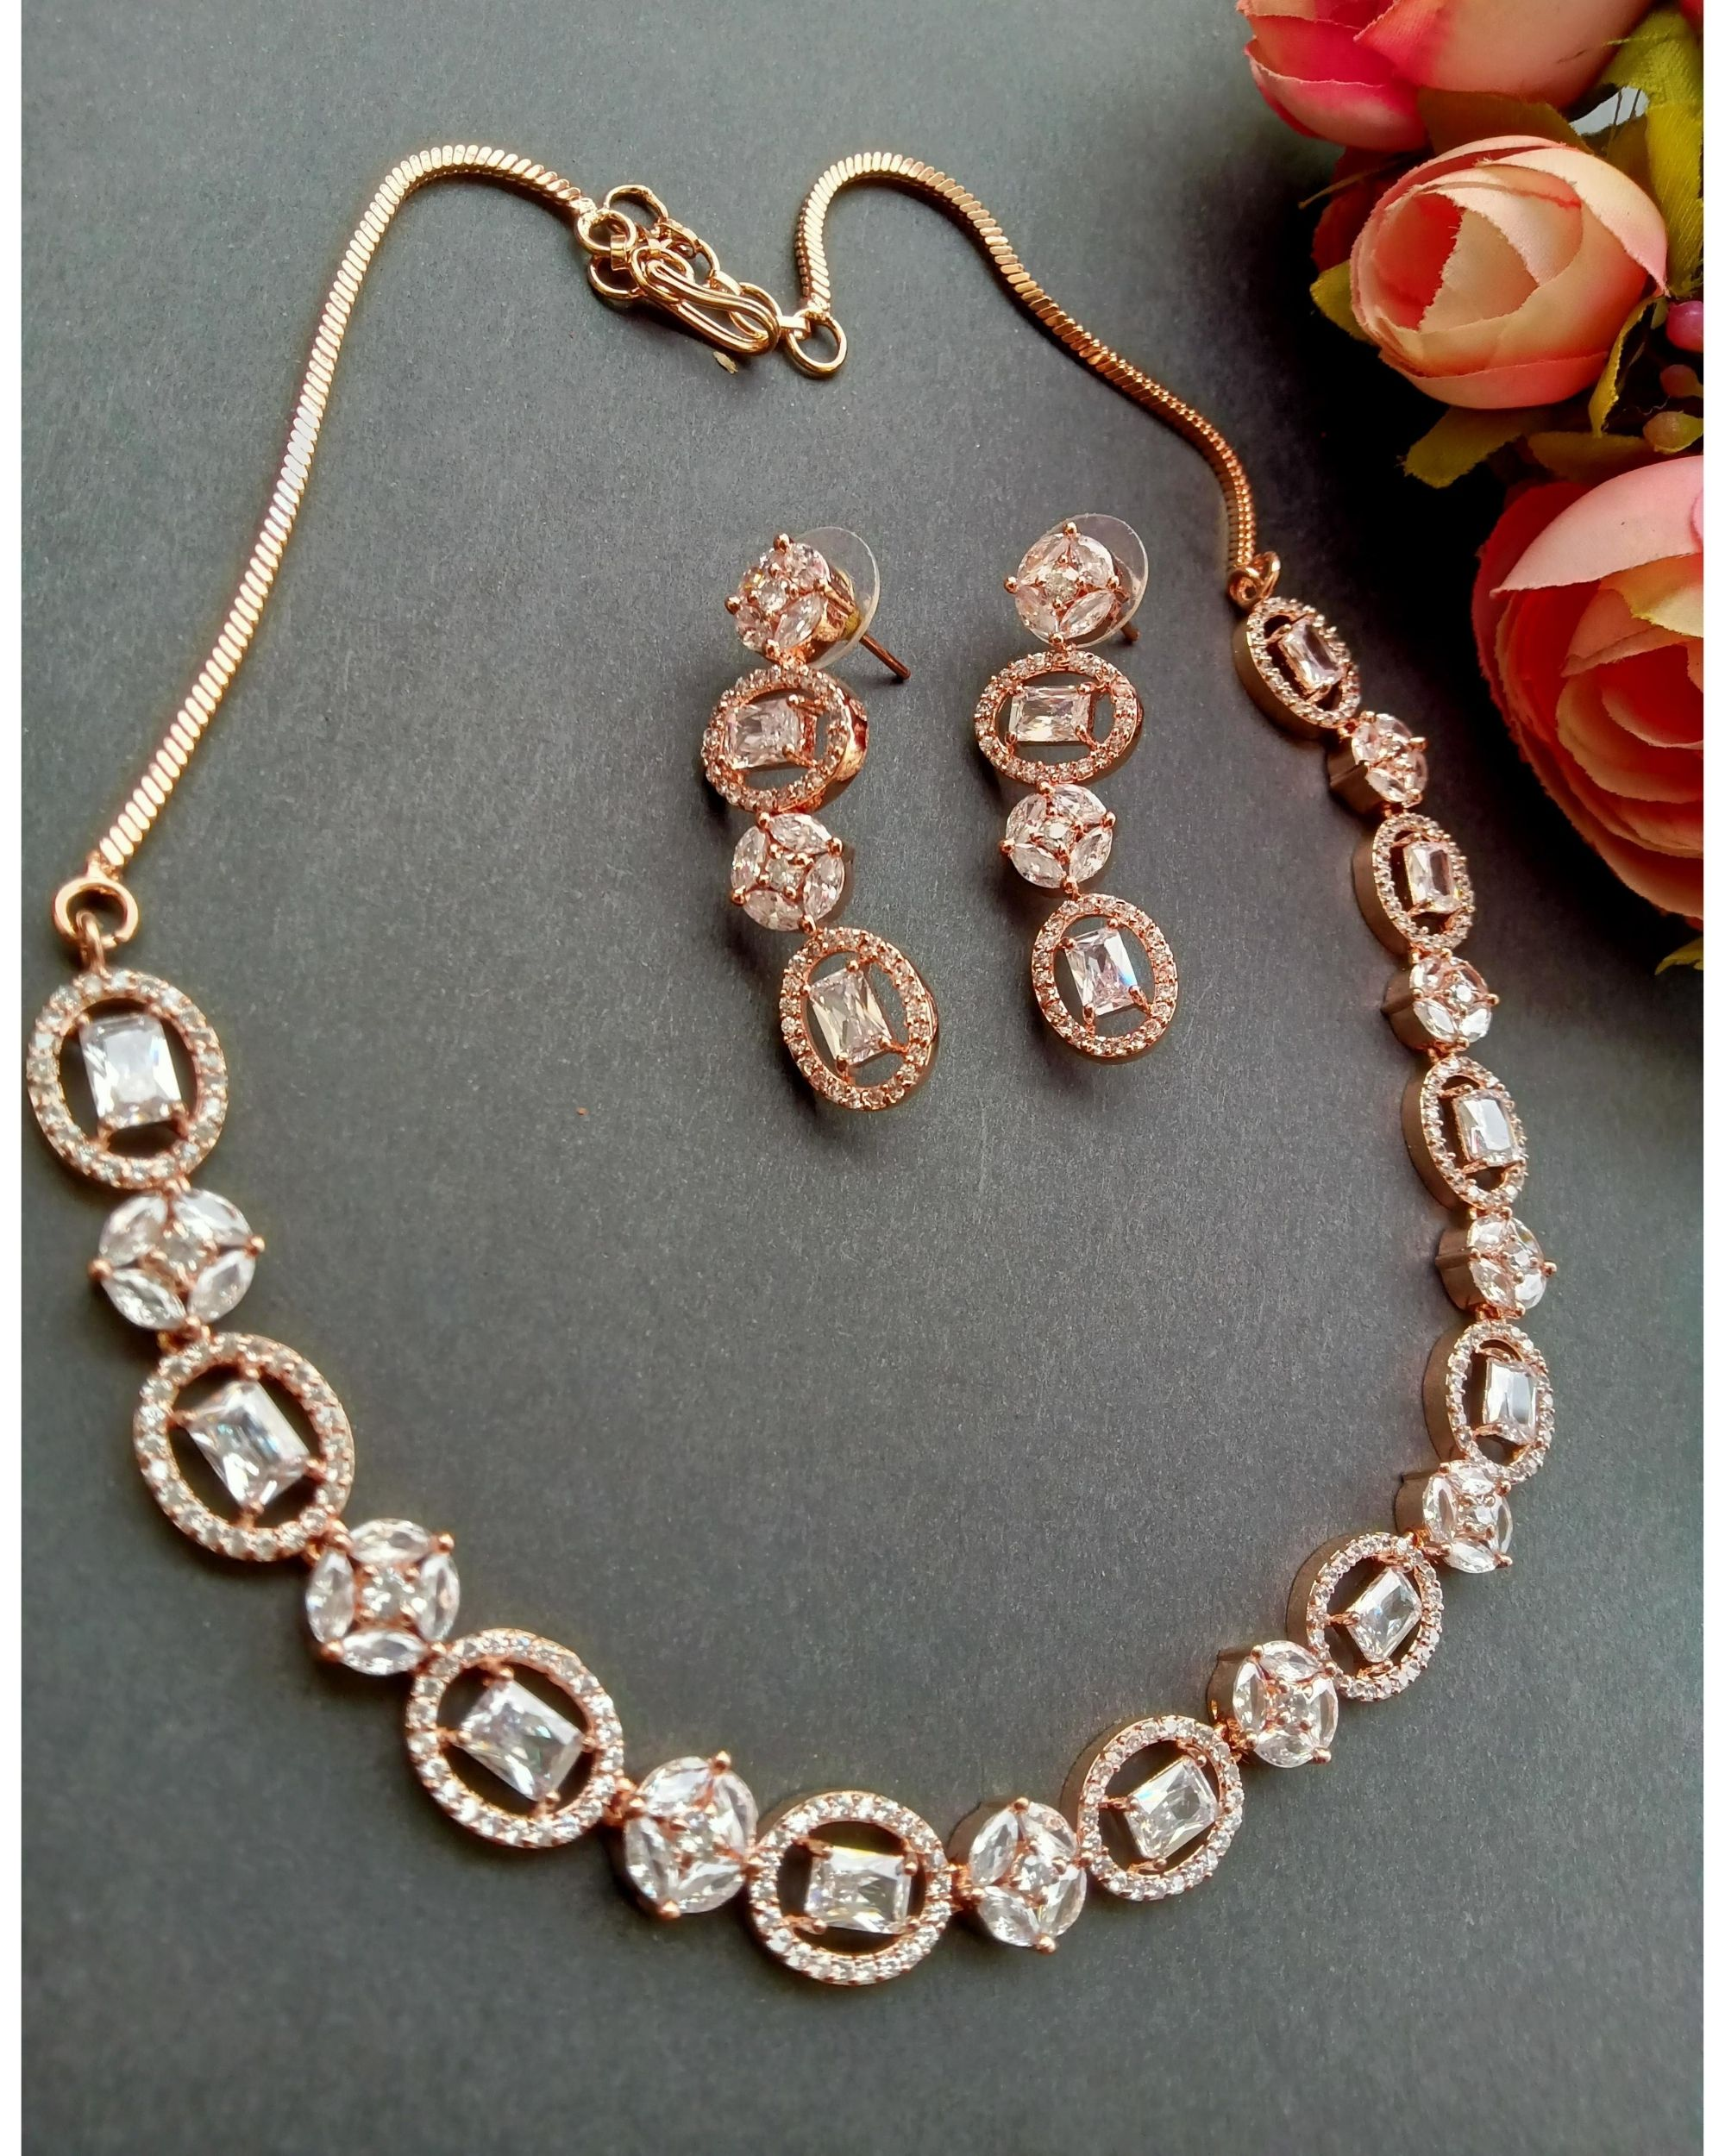 Rose pink oval stone neckpiece with earrings - set of two